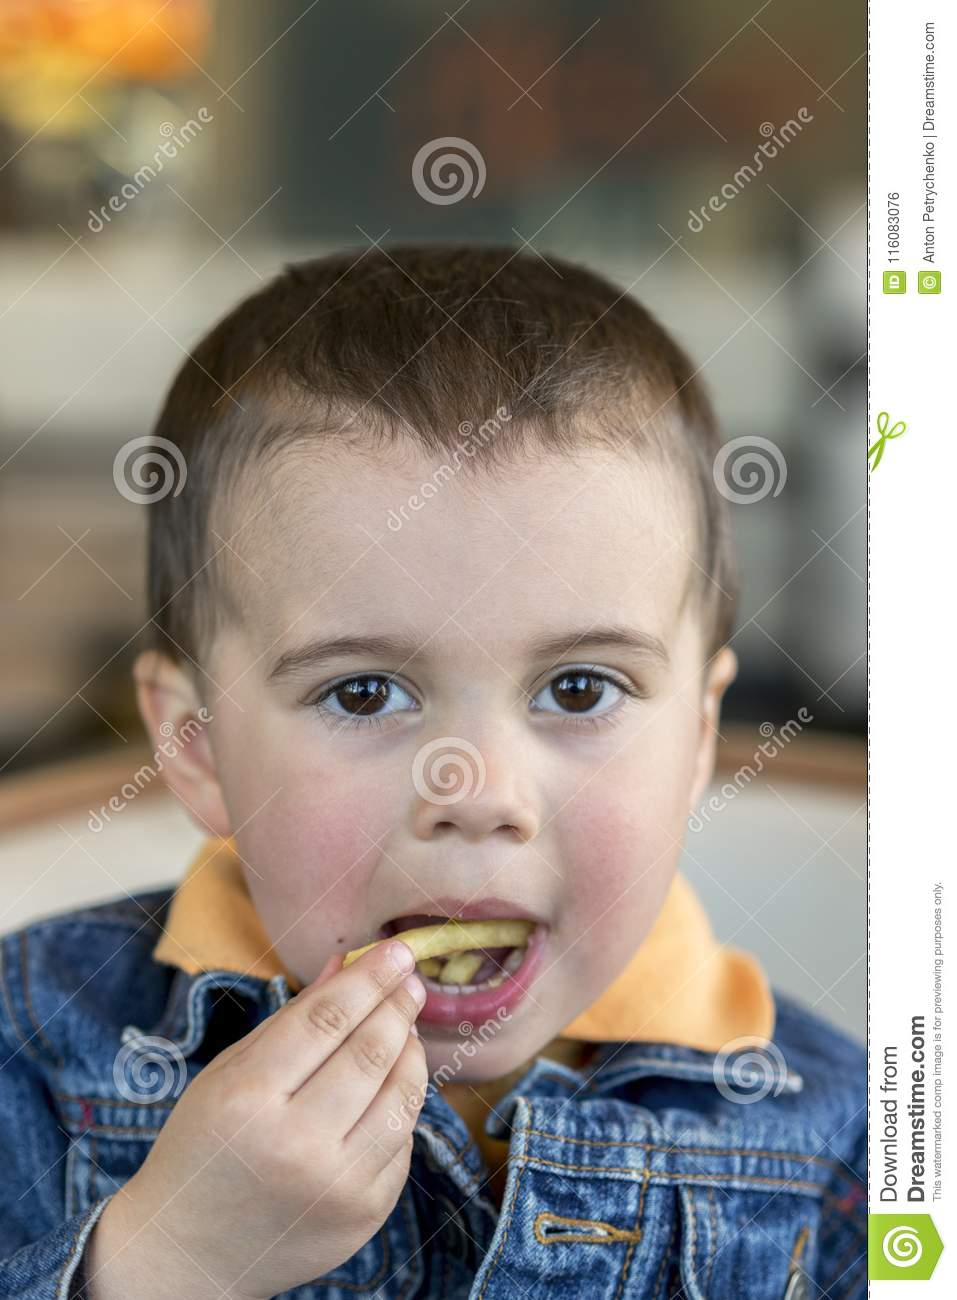 1ce34b0317eb2 A happy baby boy eats French fries. fast food. European. boy 2 years old  close-up eating french fries. Cute little baby boy sitting at cafe eating  tasty ...